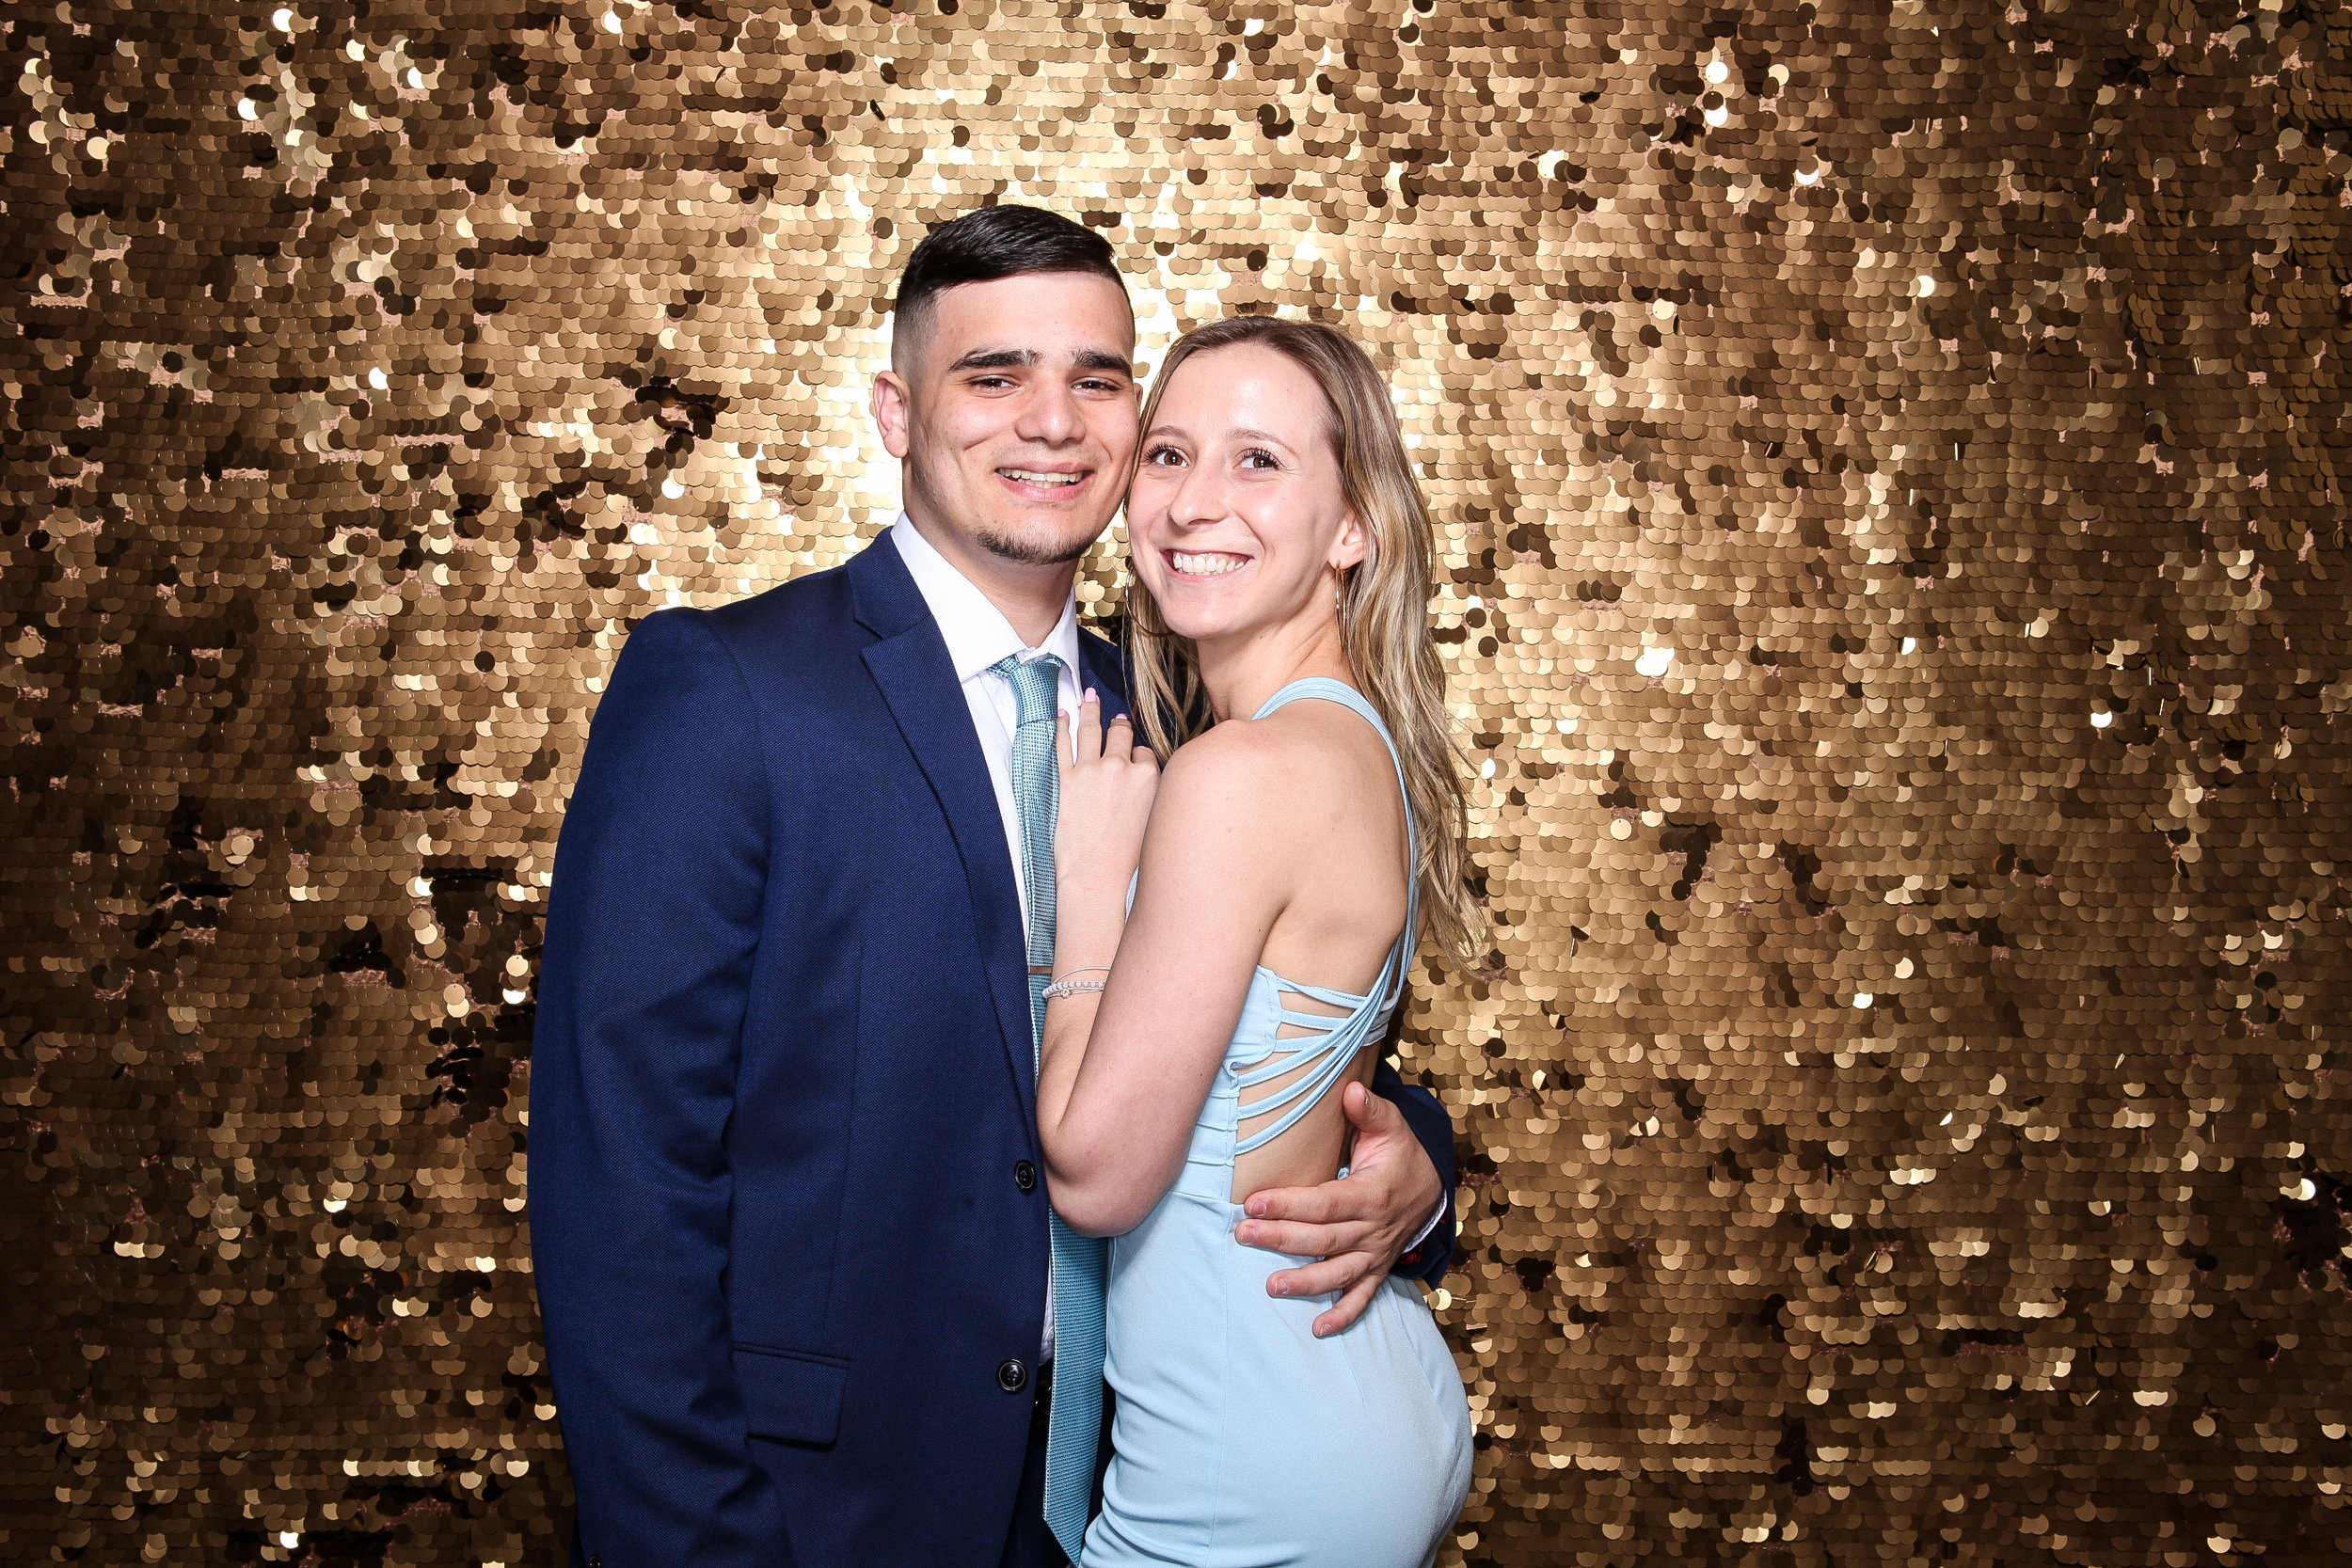 20190503_Adelphi_Senior_Formal-071.jpg